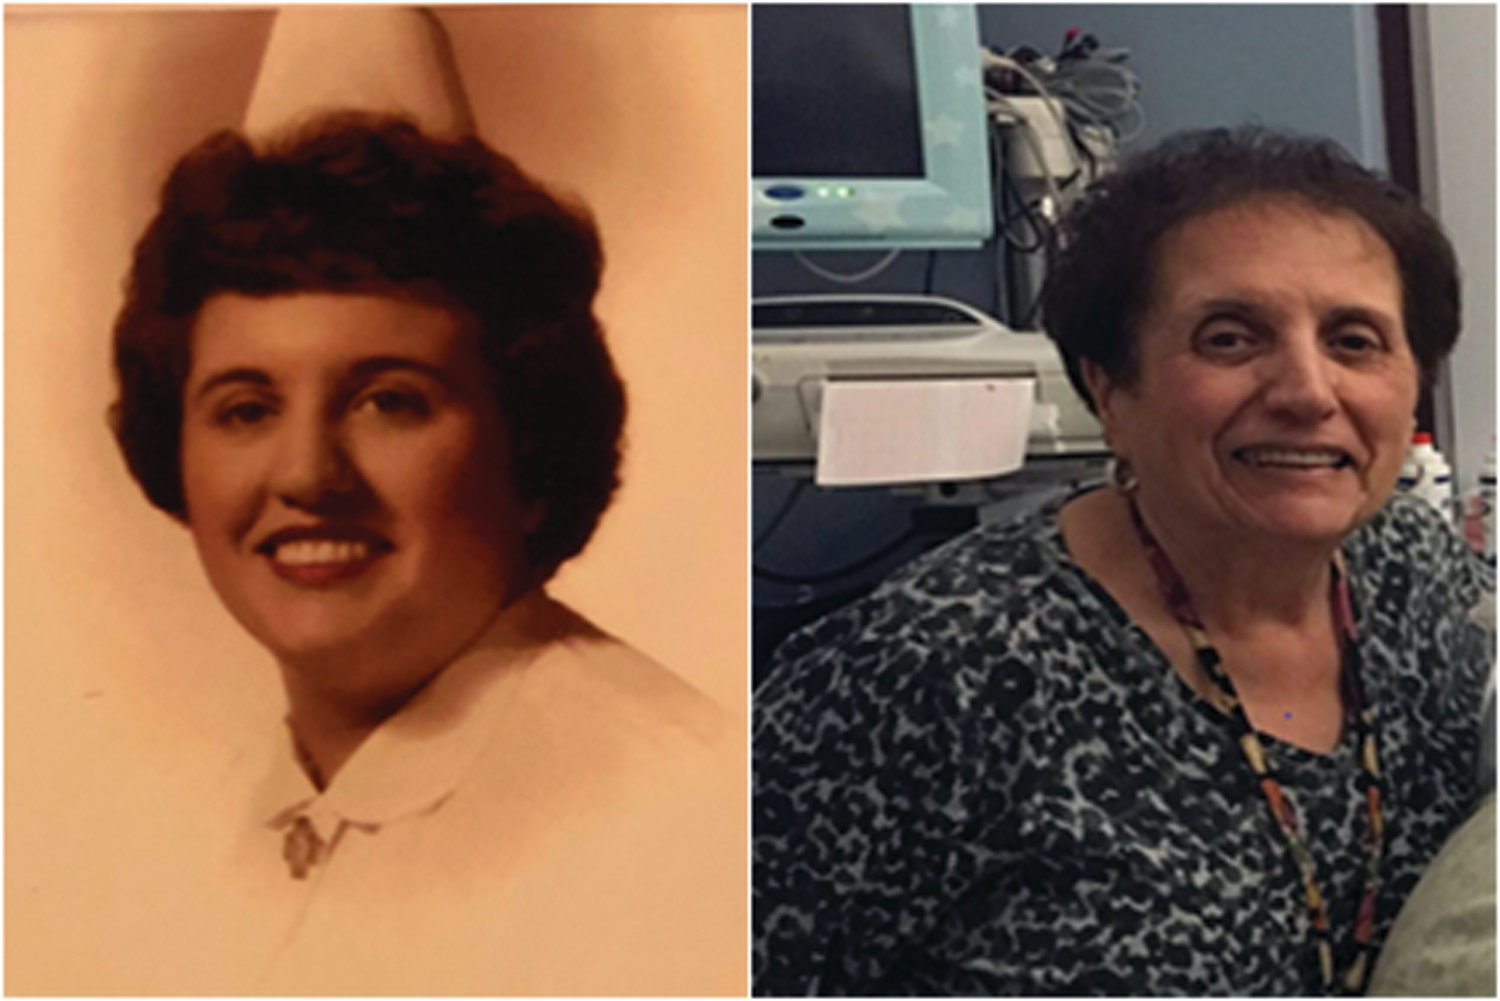 SIX DECADES OF SERVICE: Jenny Todisco, a Johnston resident and nurse at Women and Infants Hospital, retired this Tuesday after 59 years in the industry. Above right is a current picture of Todisco juxtaposed with her 1960 graduation photo.